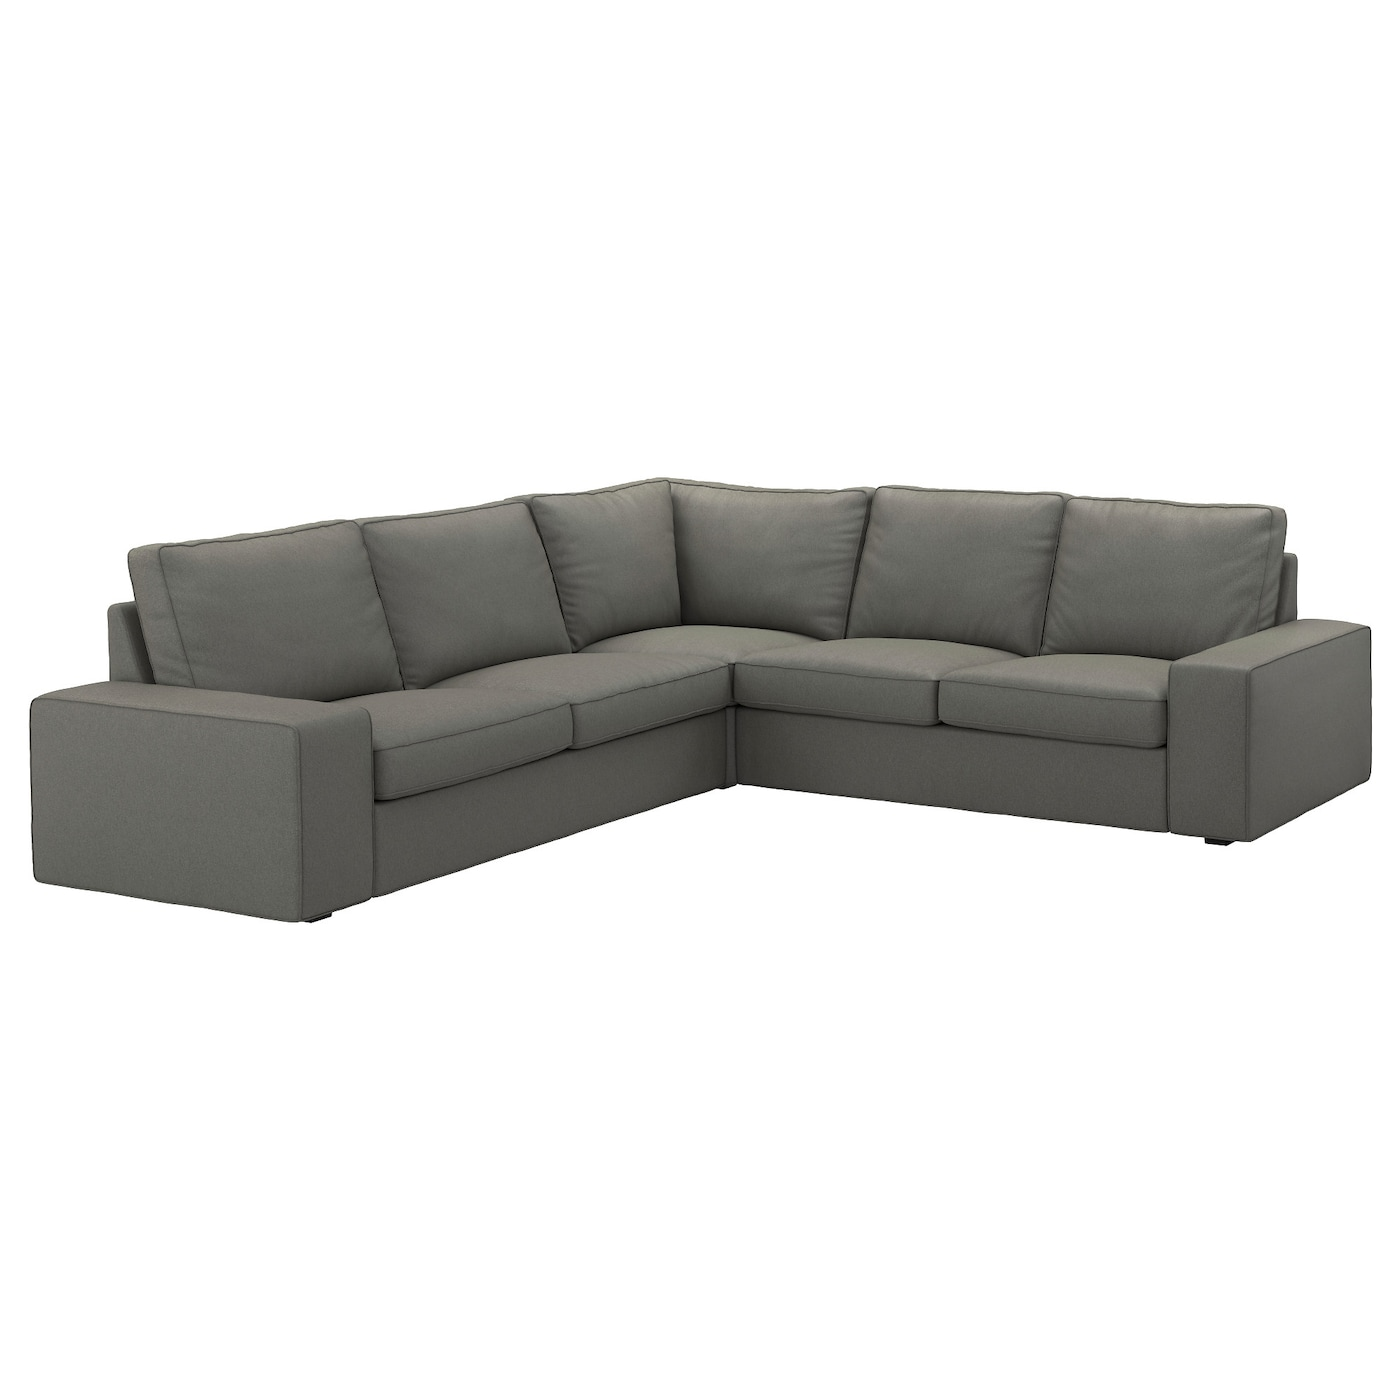 kivik corner sofa 2 2 borred grey green ikea. Black Bedroom Furniture Sets. Home Design Ideas